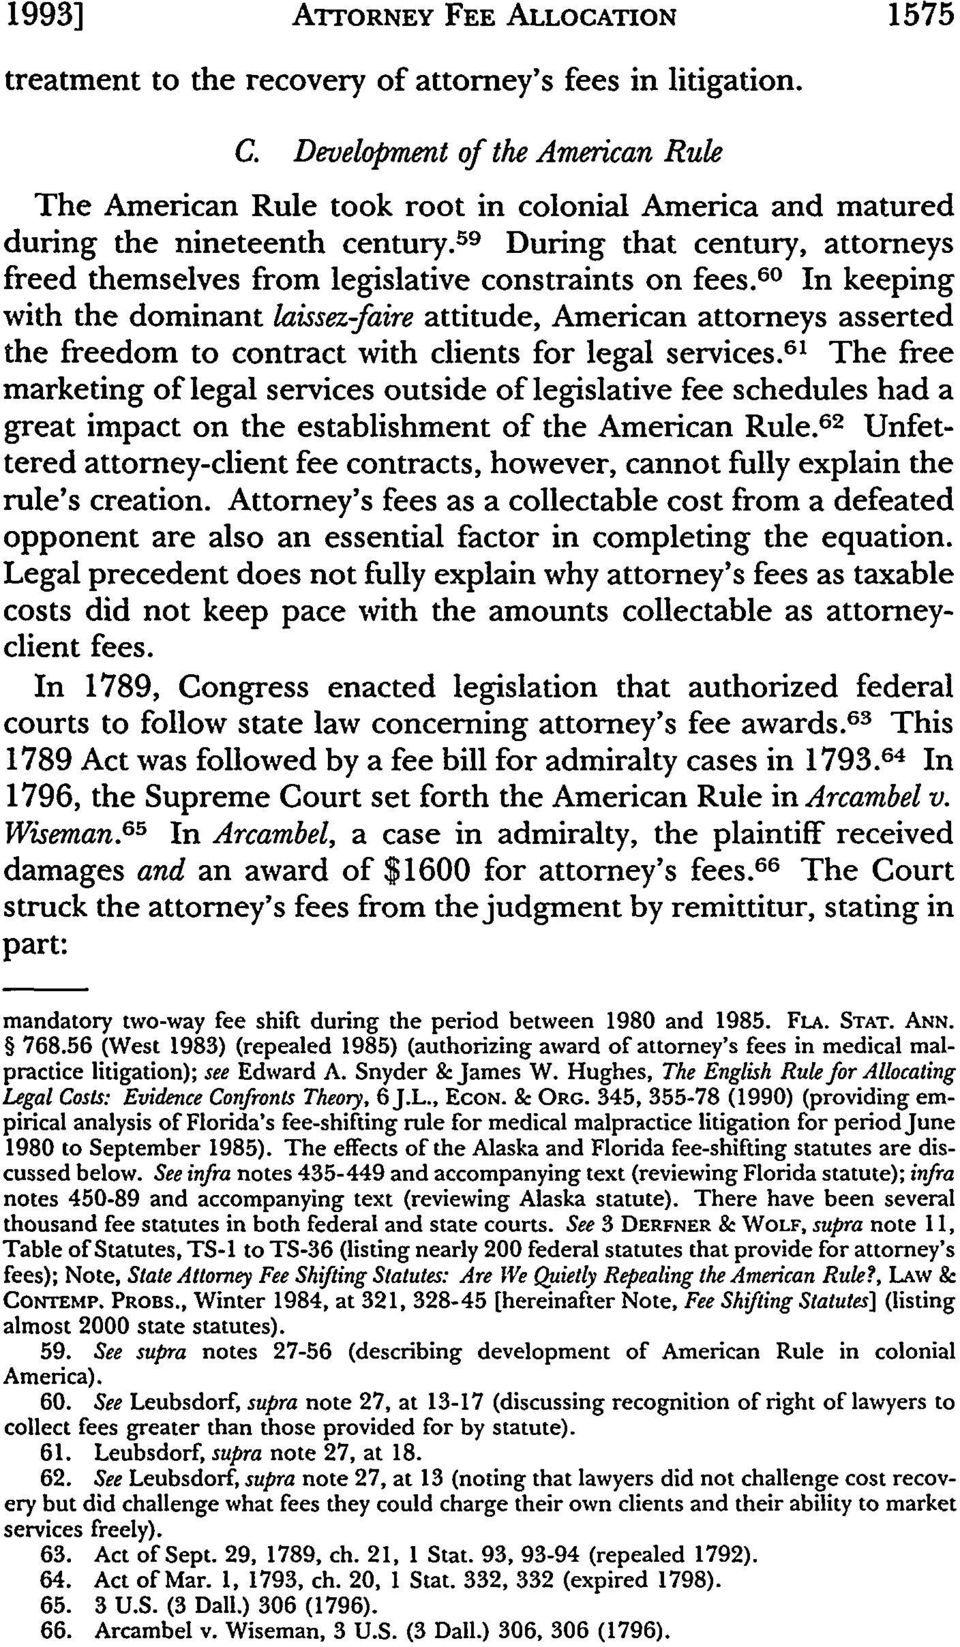 59 During that century, attorneys freed themselves from legislative constraints on fees.